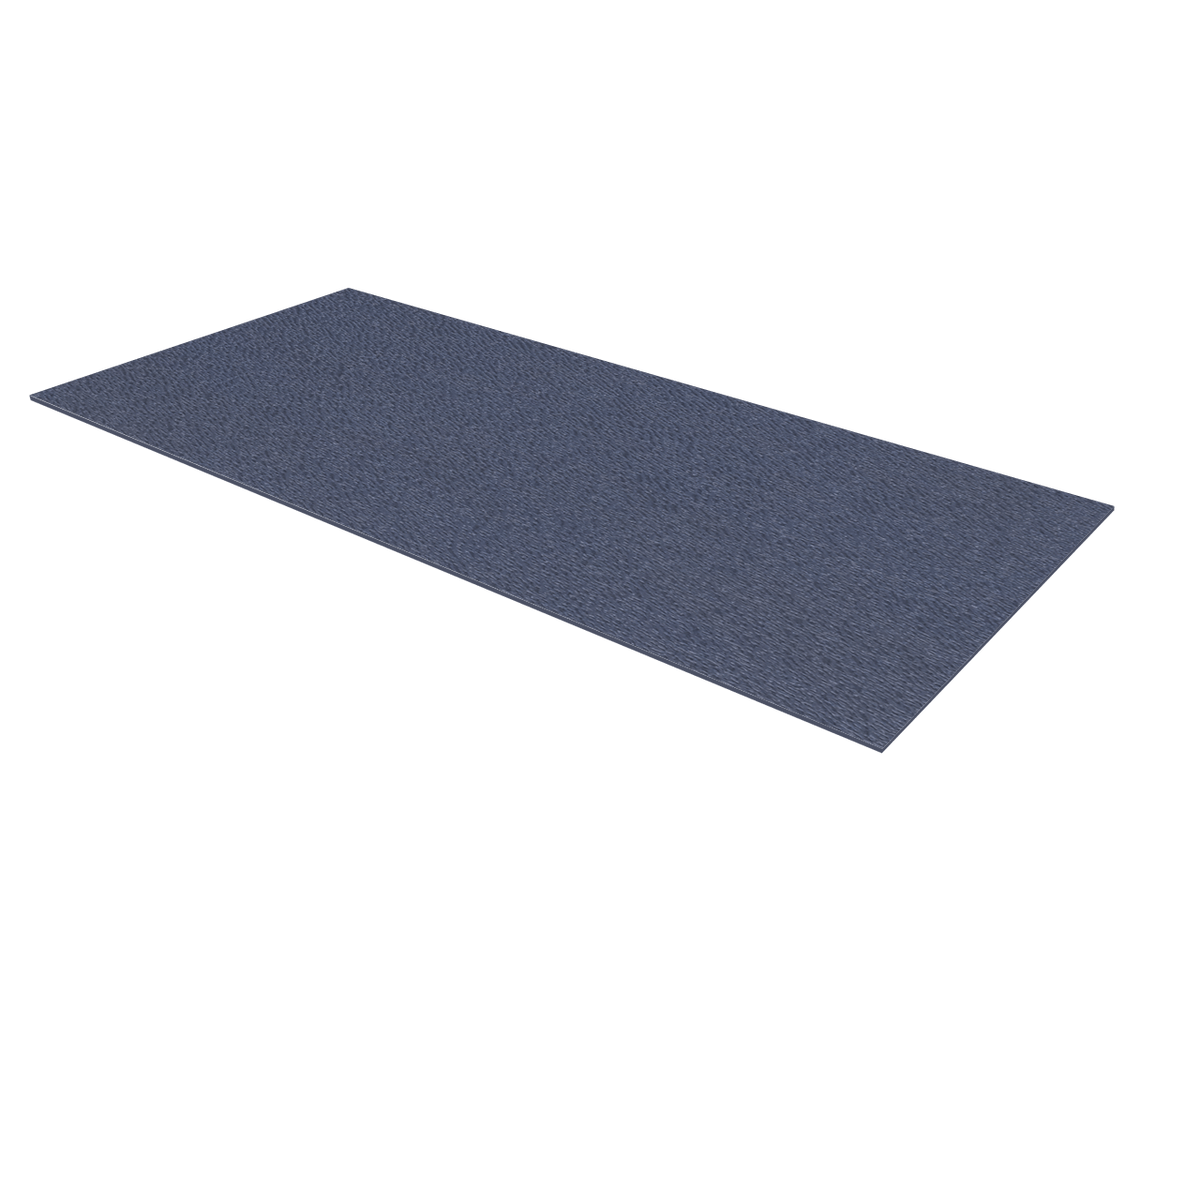 ABS Plastic Sheet - Light Blue